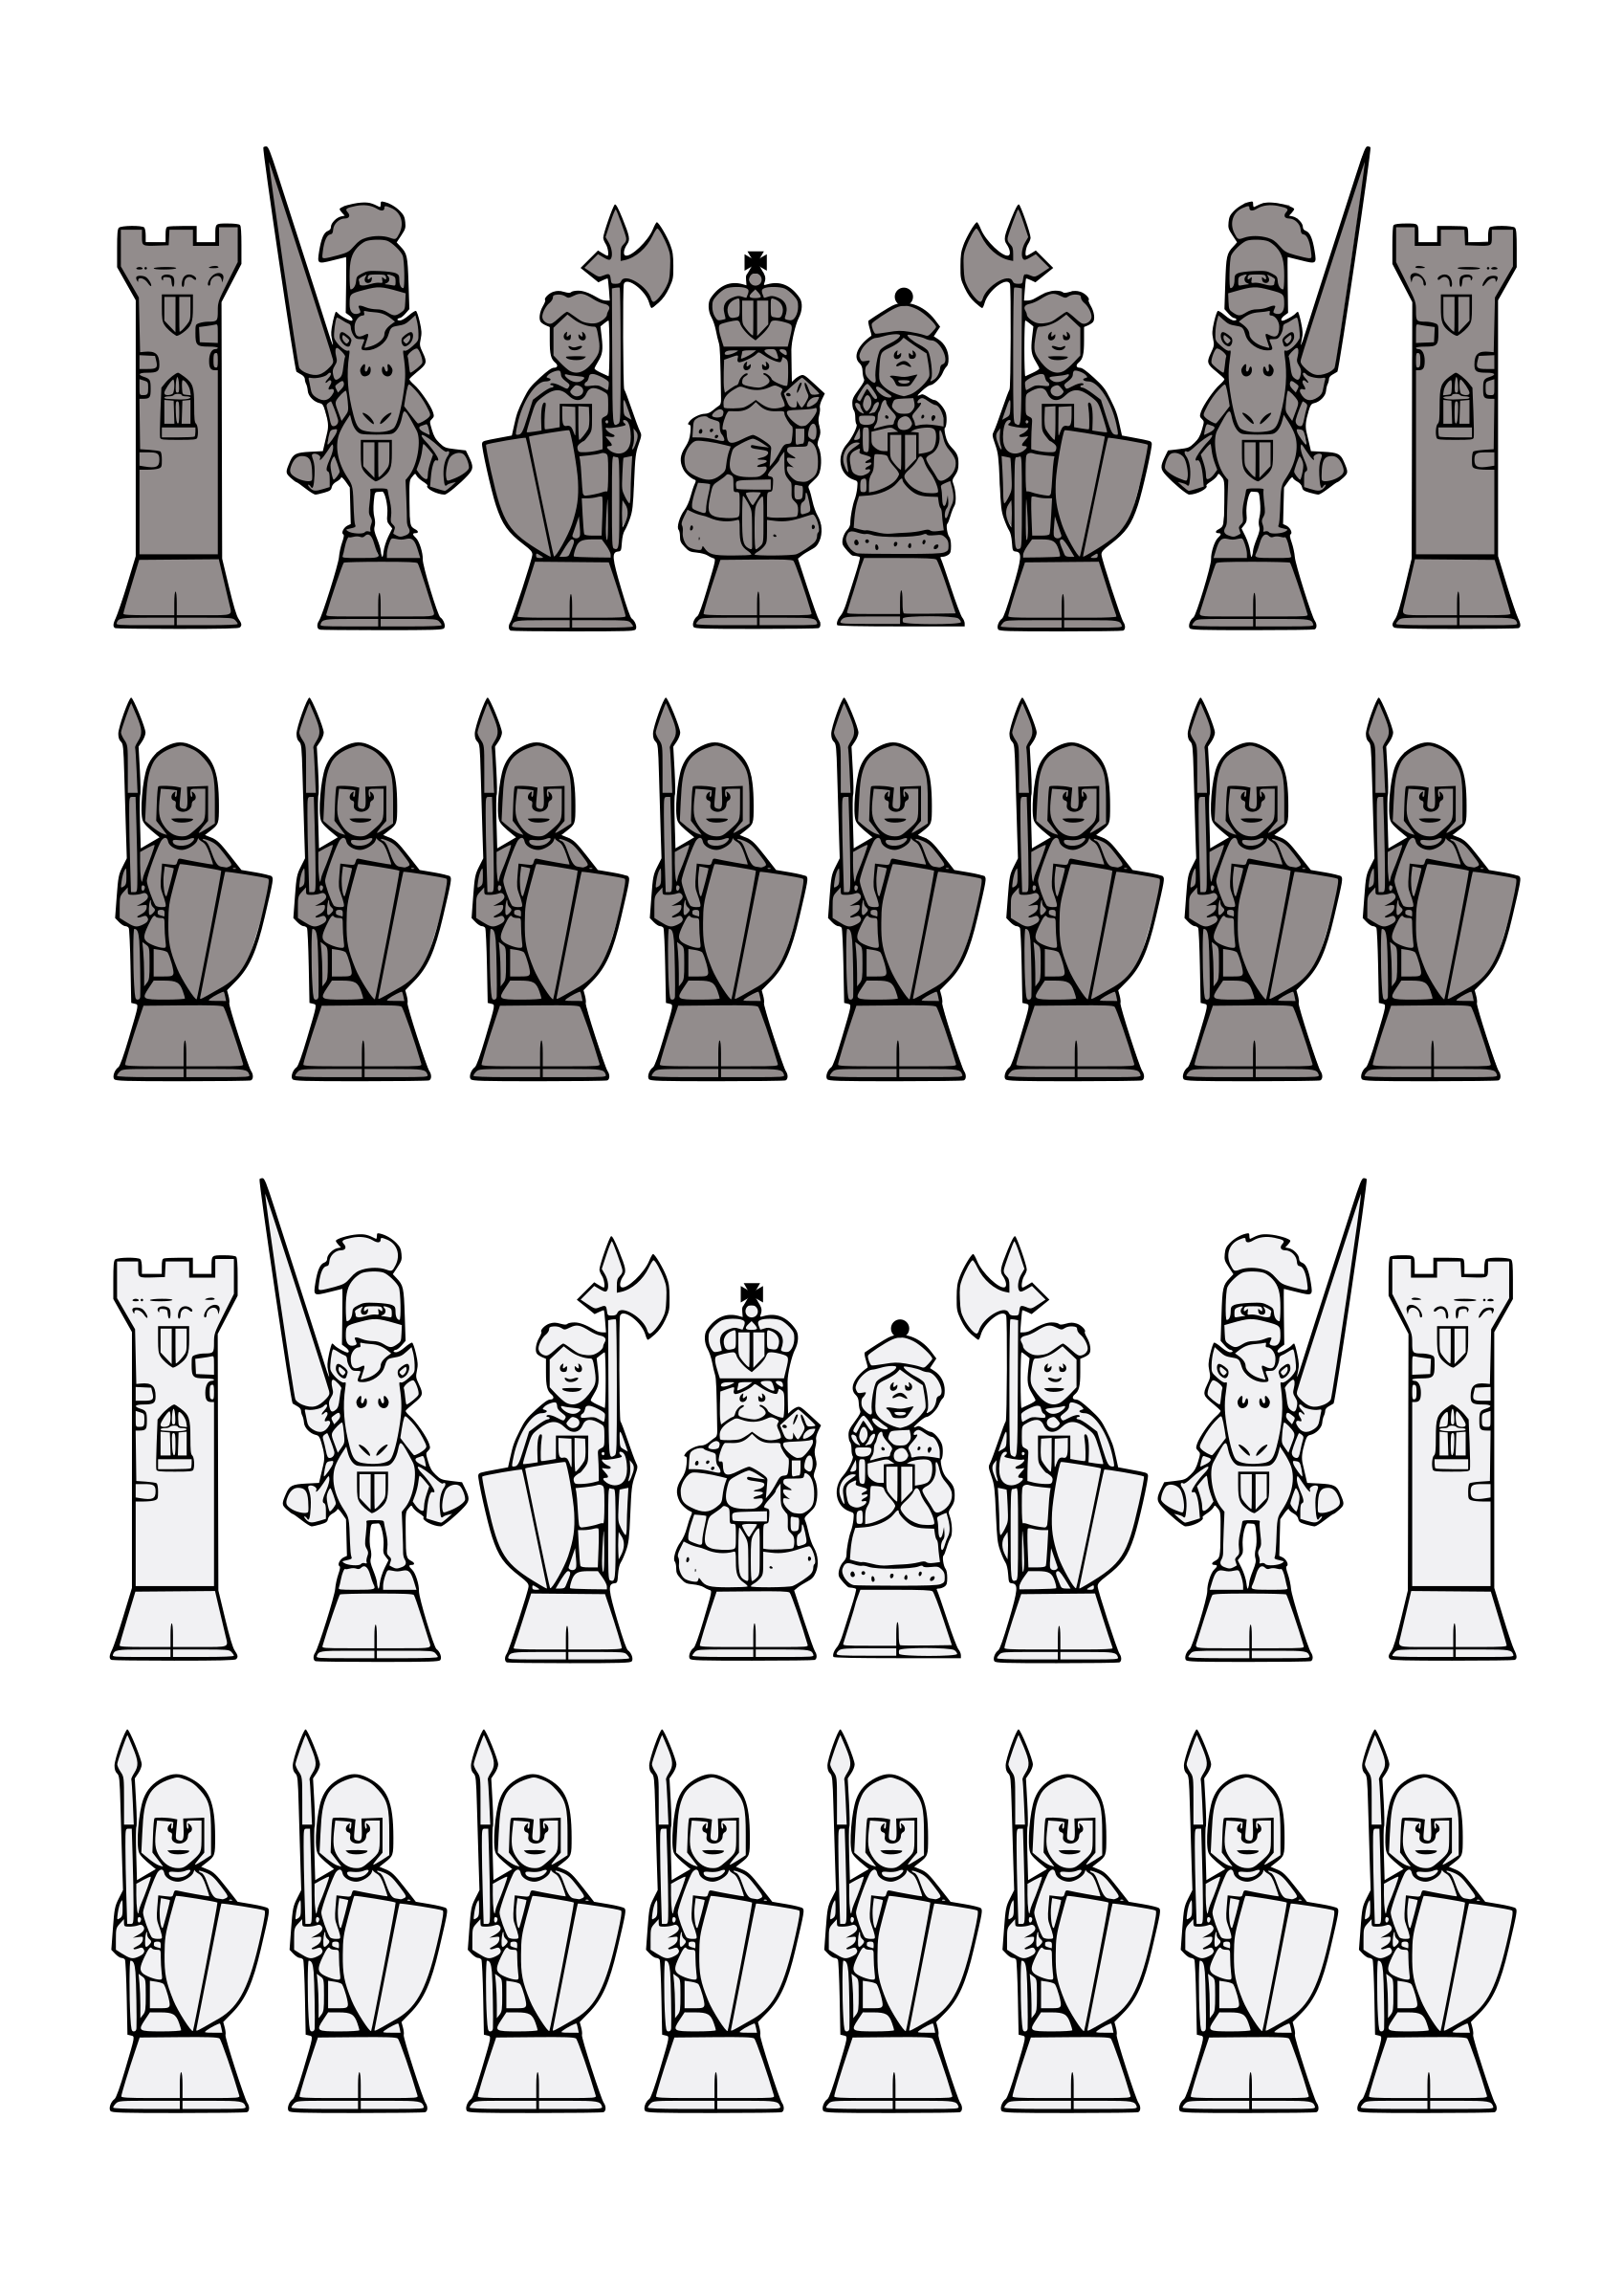 Print Out Chess Set by j4p4n